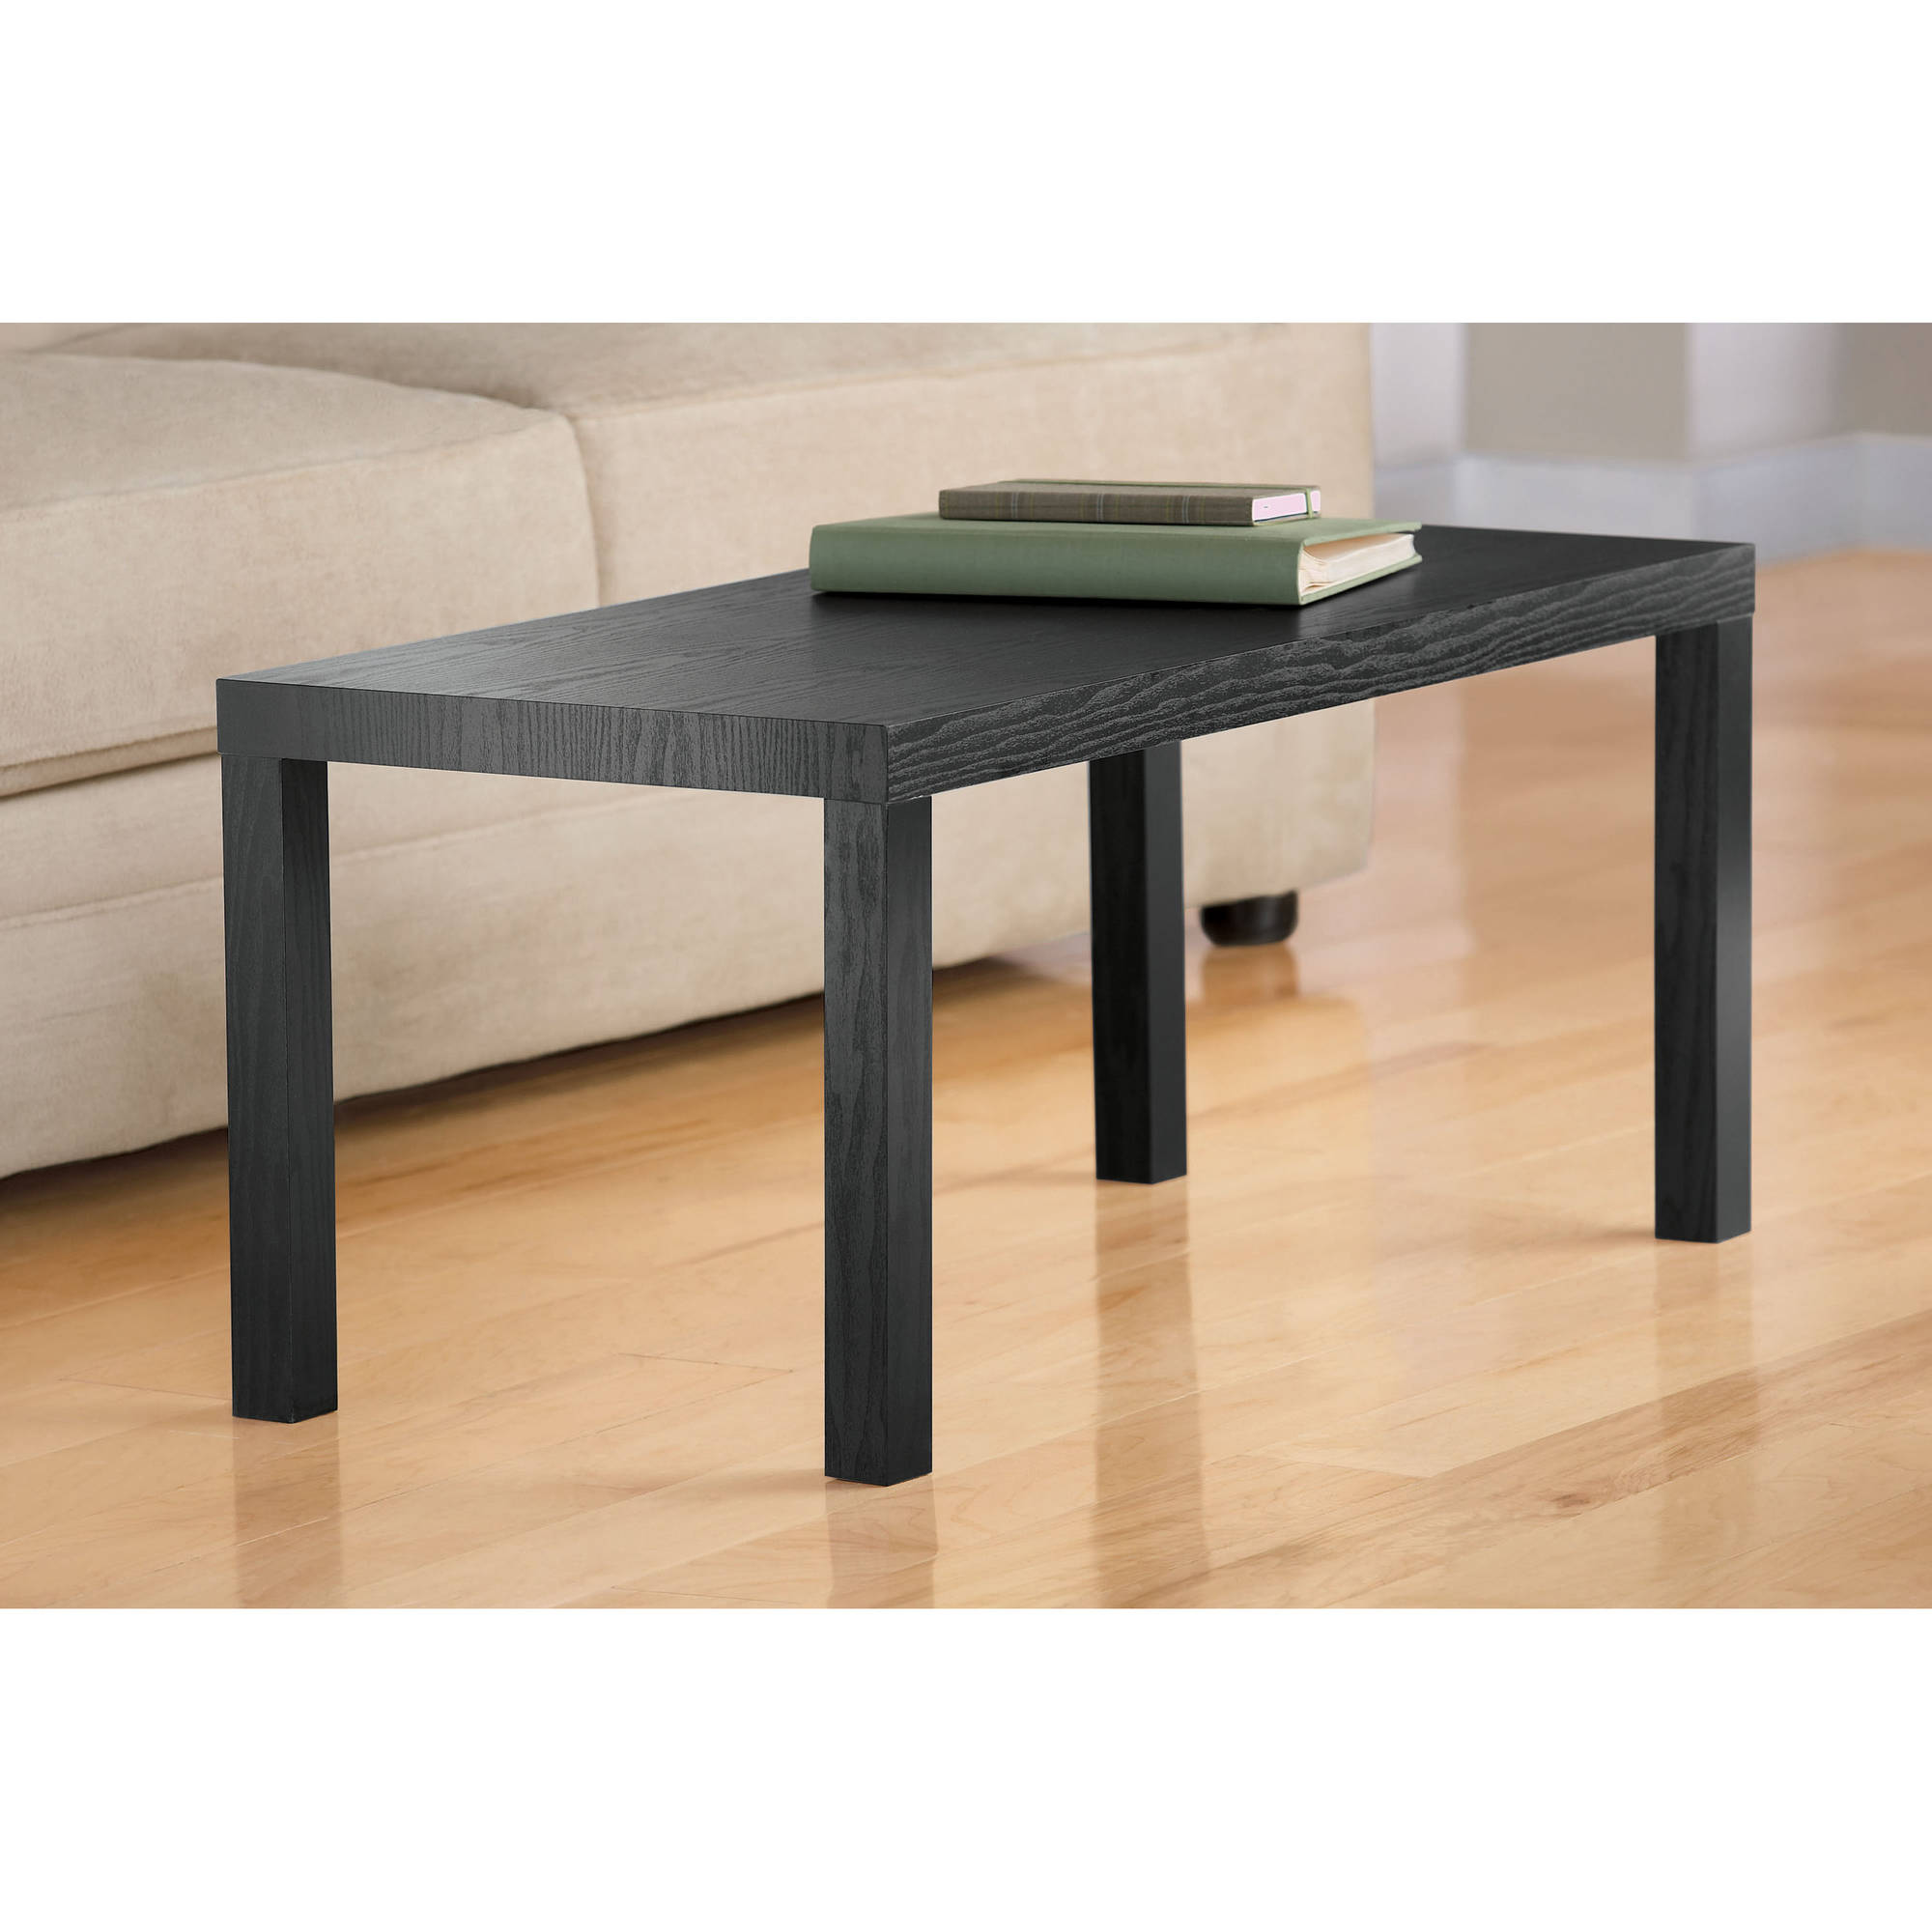 furniture beautiful collection coffee table tables mainstays end side round and set black modern gallery unfinished wood computer armoire quebec manufacturers half moon sauder